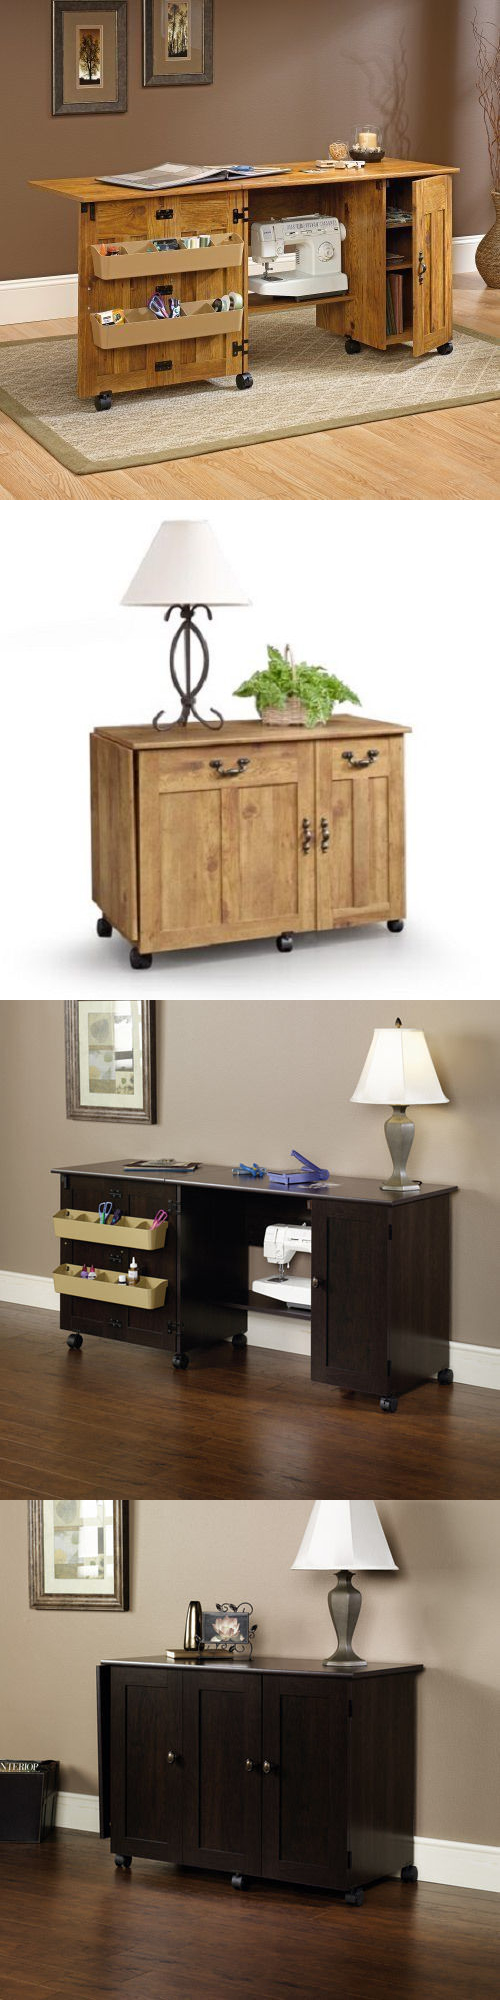 Craft Carts 146400: New Sauder Sewing Machine And Craft Table Drop Leaf  Shelves Storage Bins